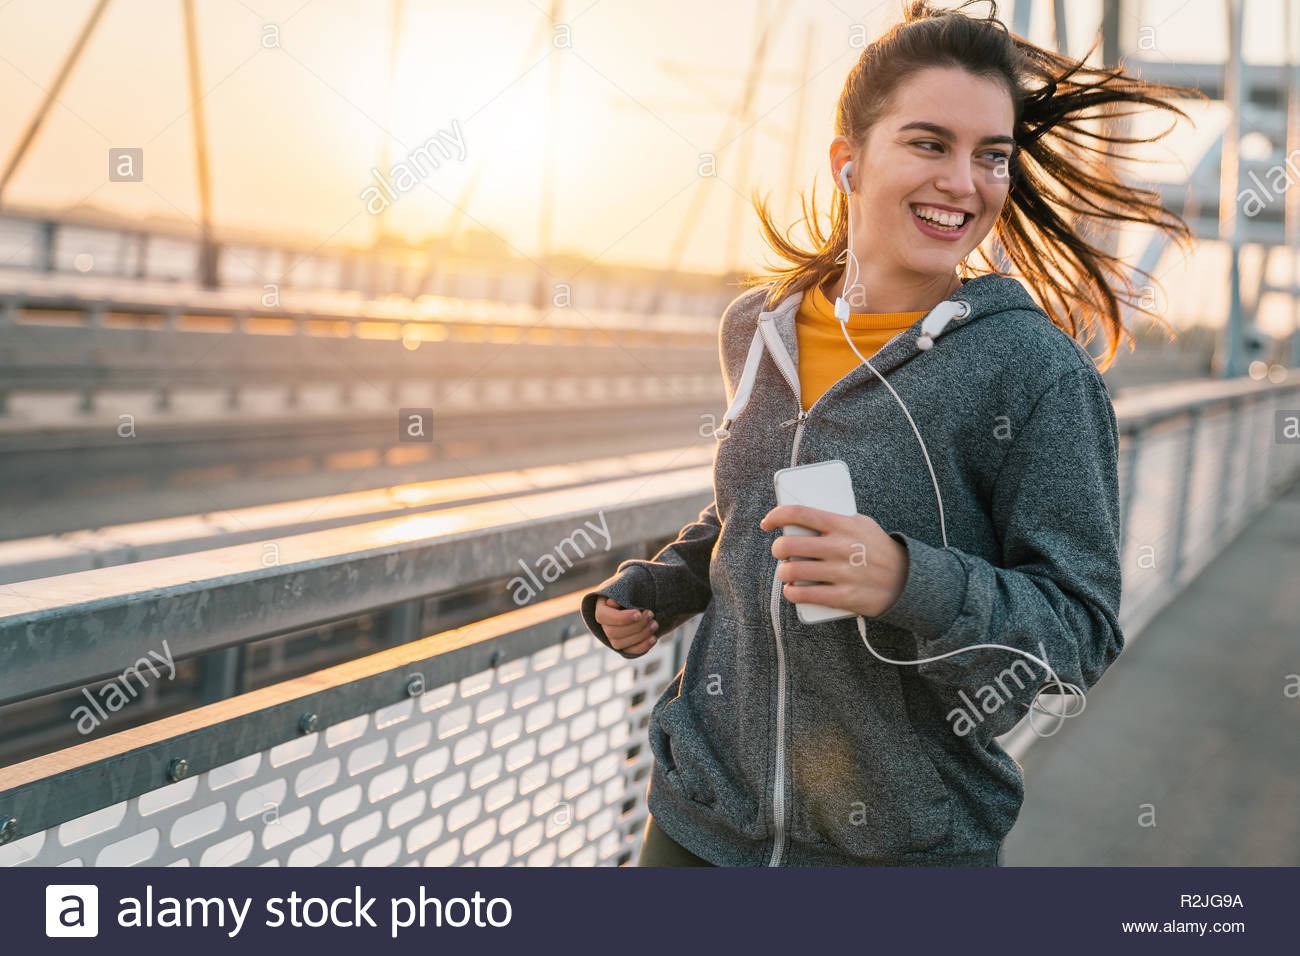 Cheerful sportswoman listening to music on earphones while jogging on a bridge at sunrise. - Stock Image